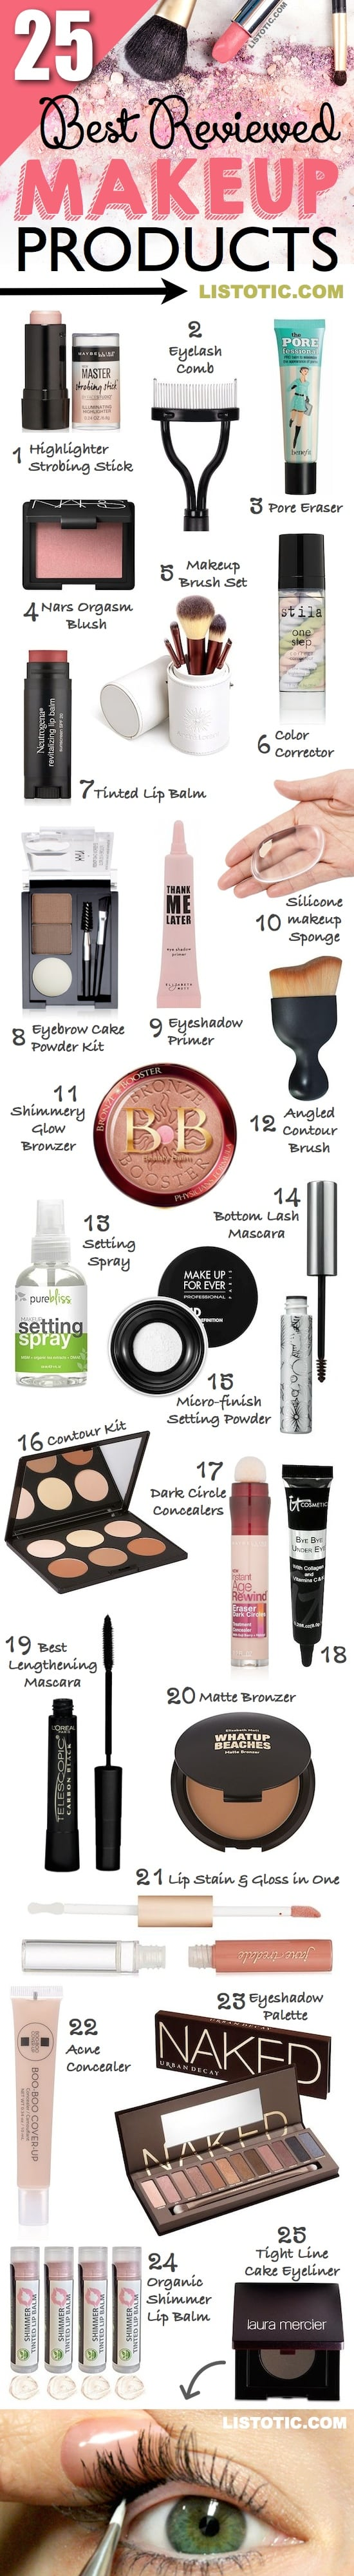 BEAUTY: The 25 best must-have makeup products for beginners and professionals! Everything from cheap to high end! Most of these can be found at drugstores or even Amazon! Makeup ideas, hacks and tips. | Listotic.com 2017